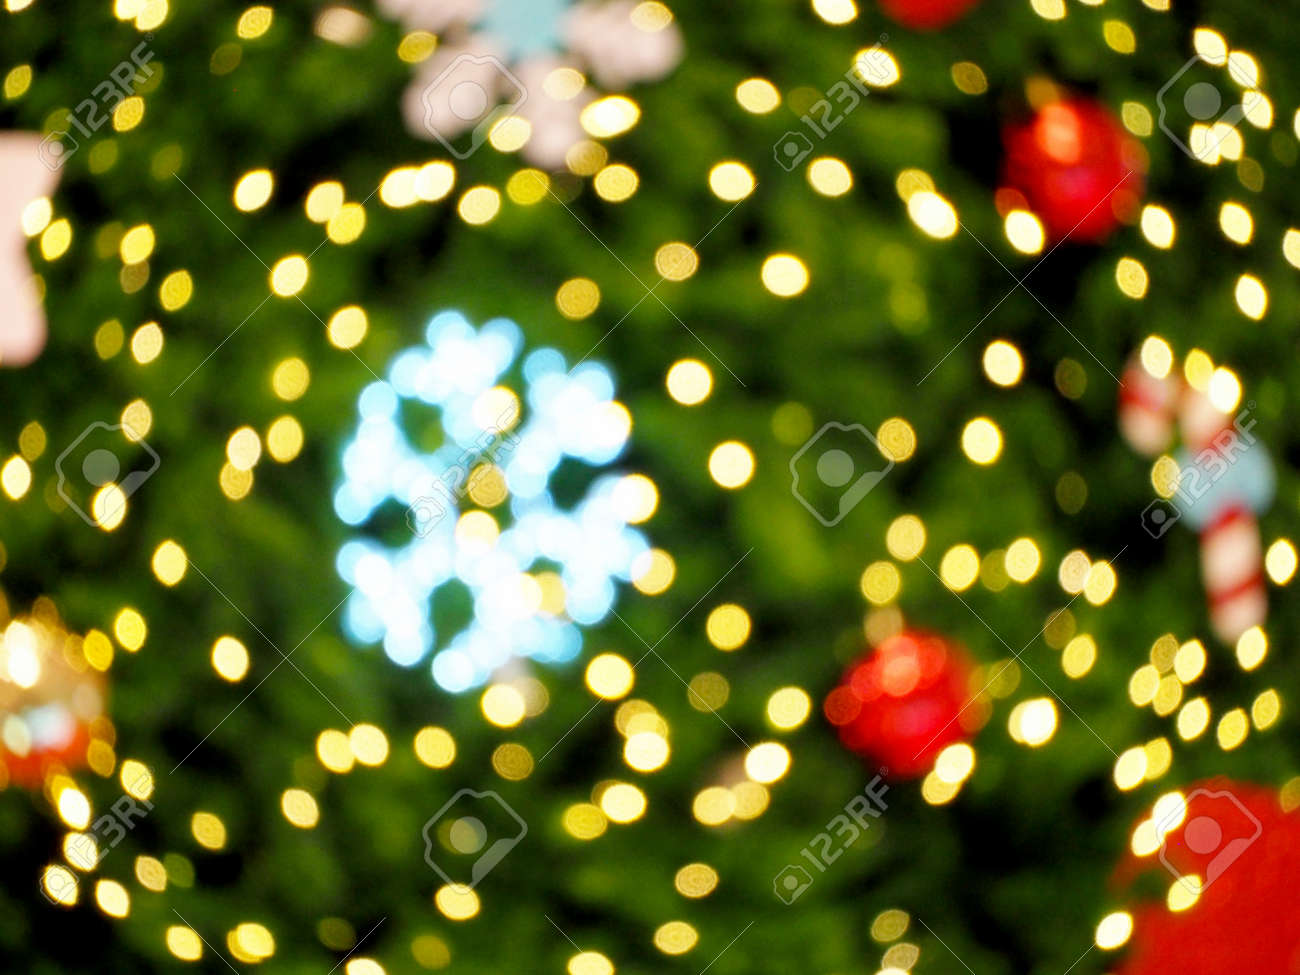 Marry Christmas and Happy New Year blur background - 145461745